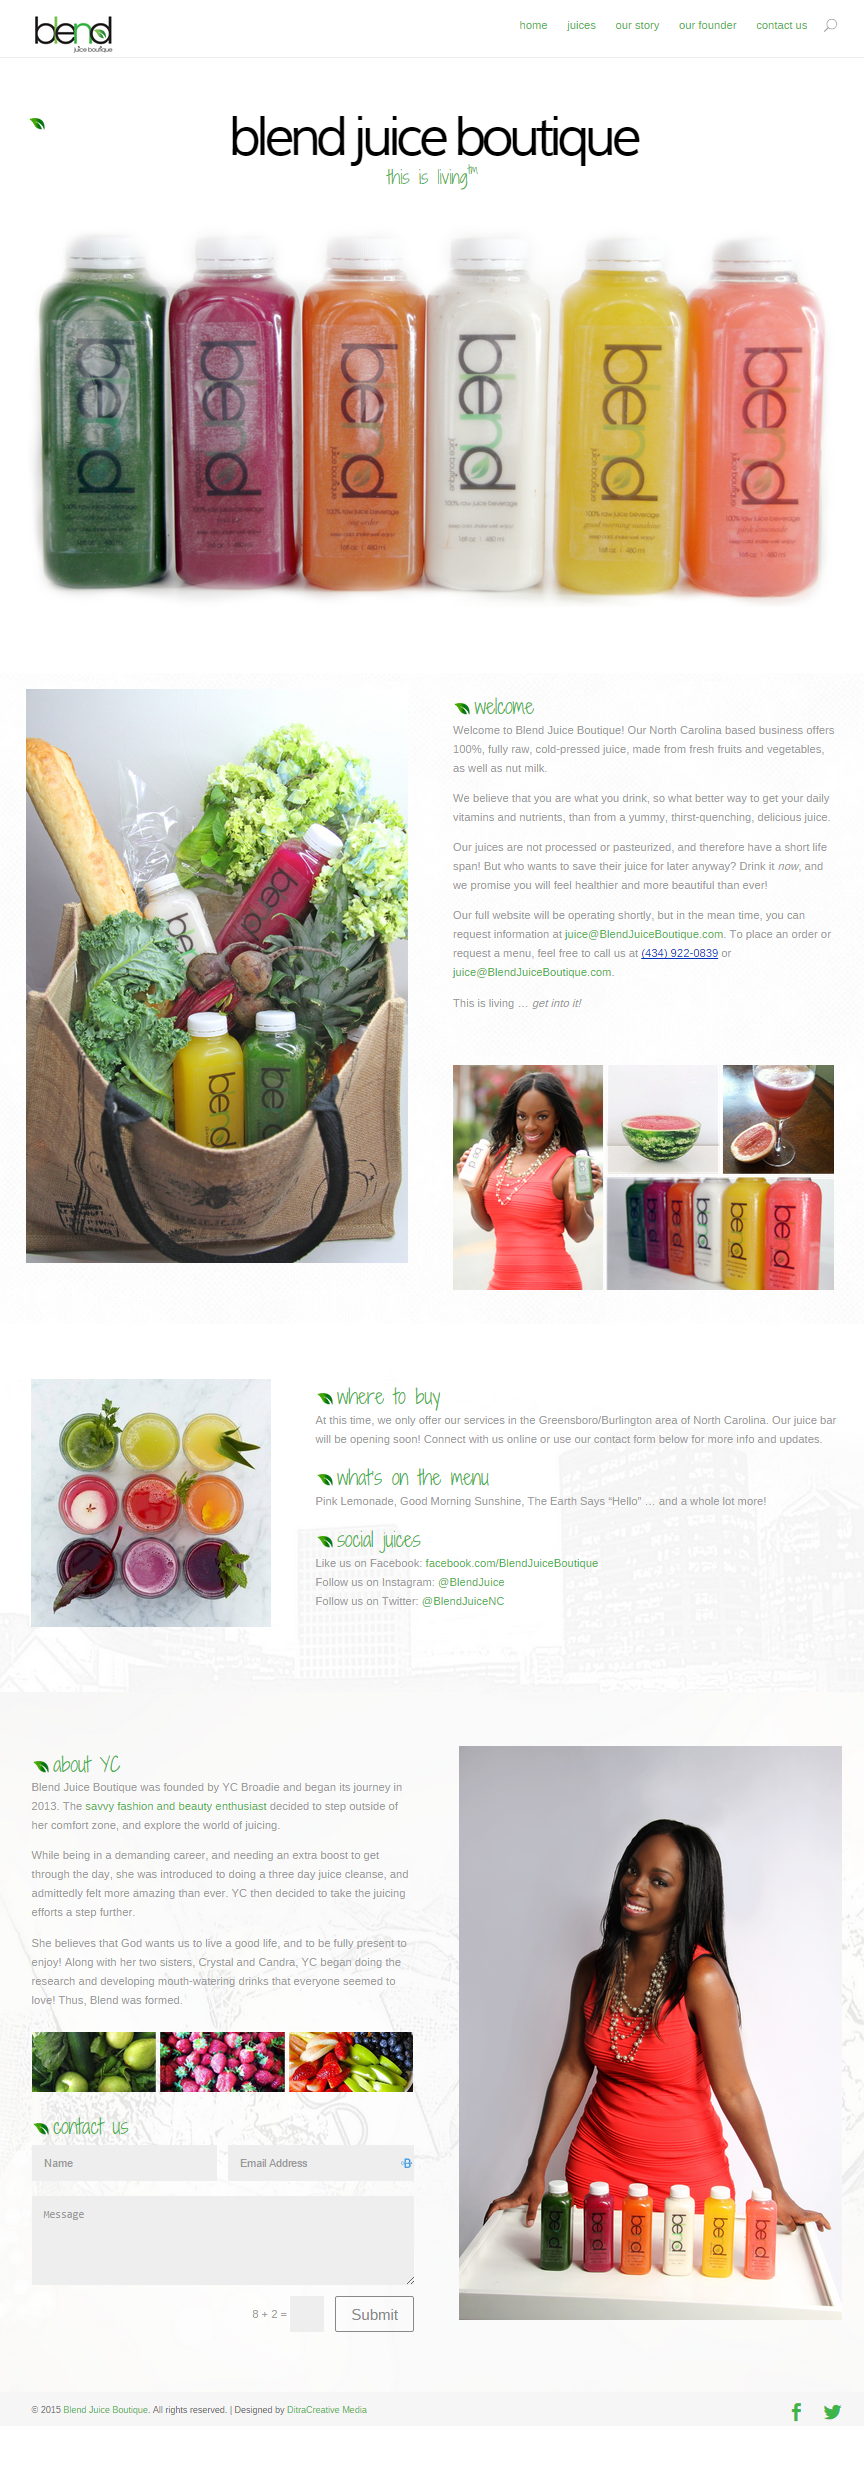 Blend Juice Boutique Website